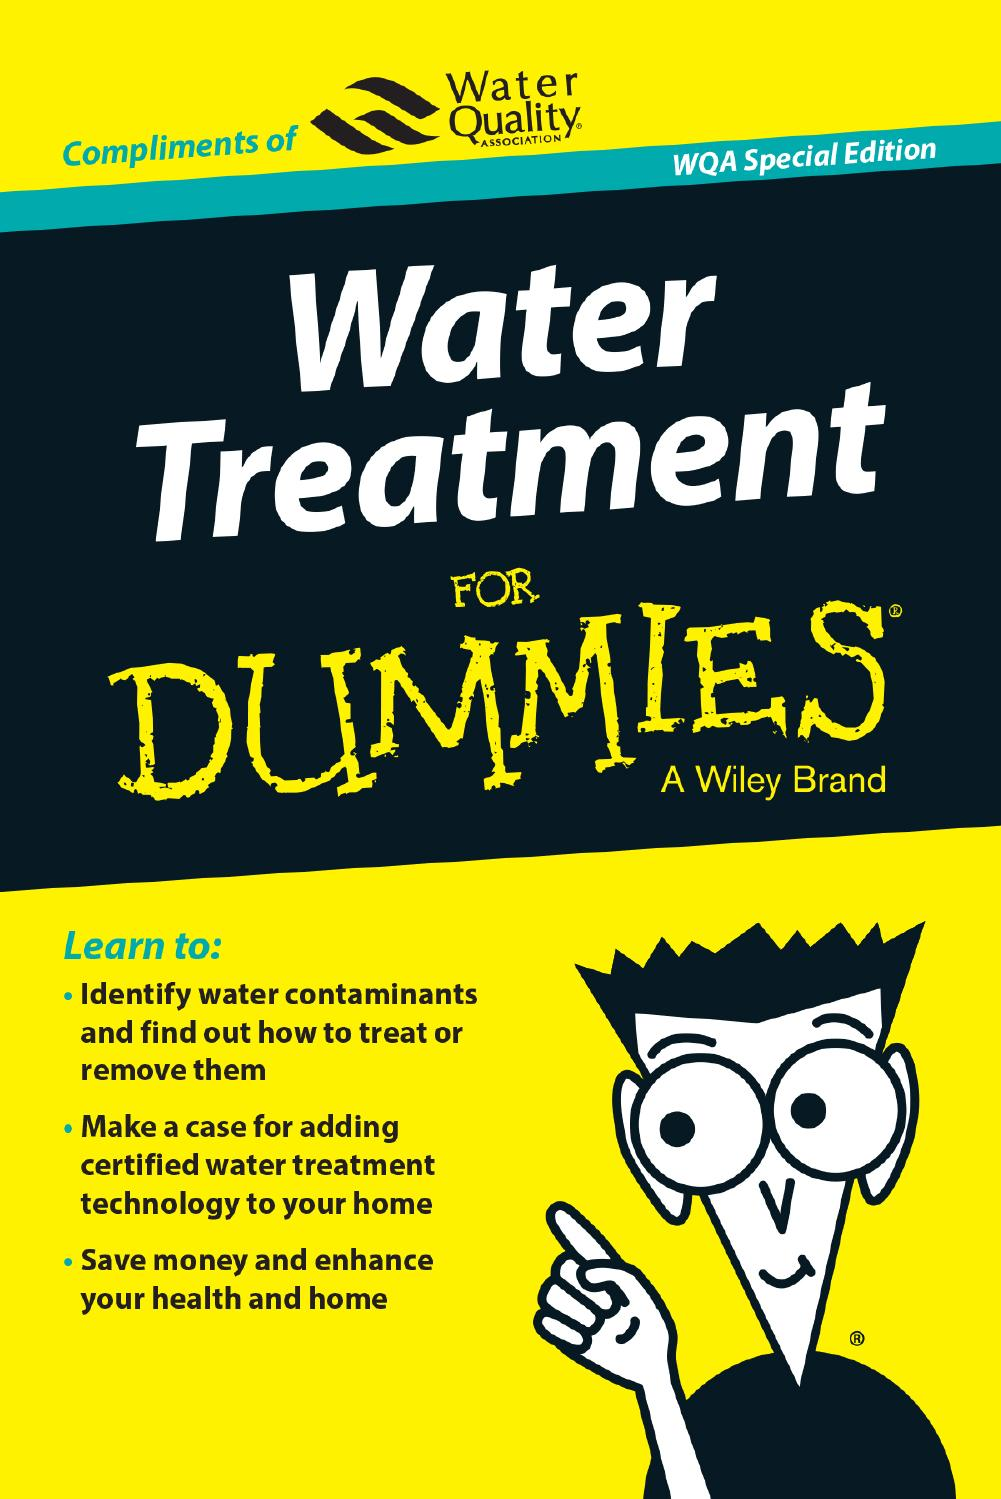 Water treatment for dummies by water quality association issuu 1betcityfo Image collections